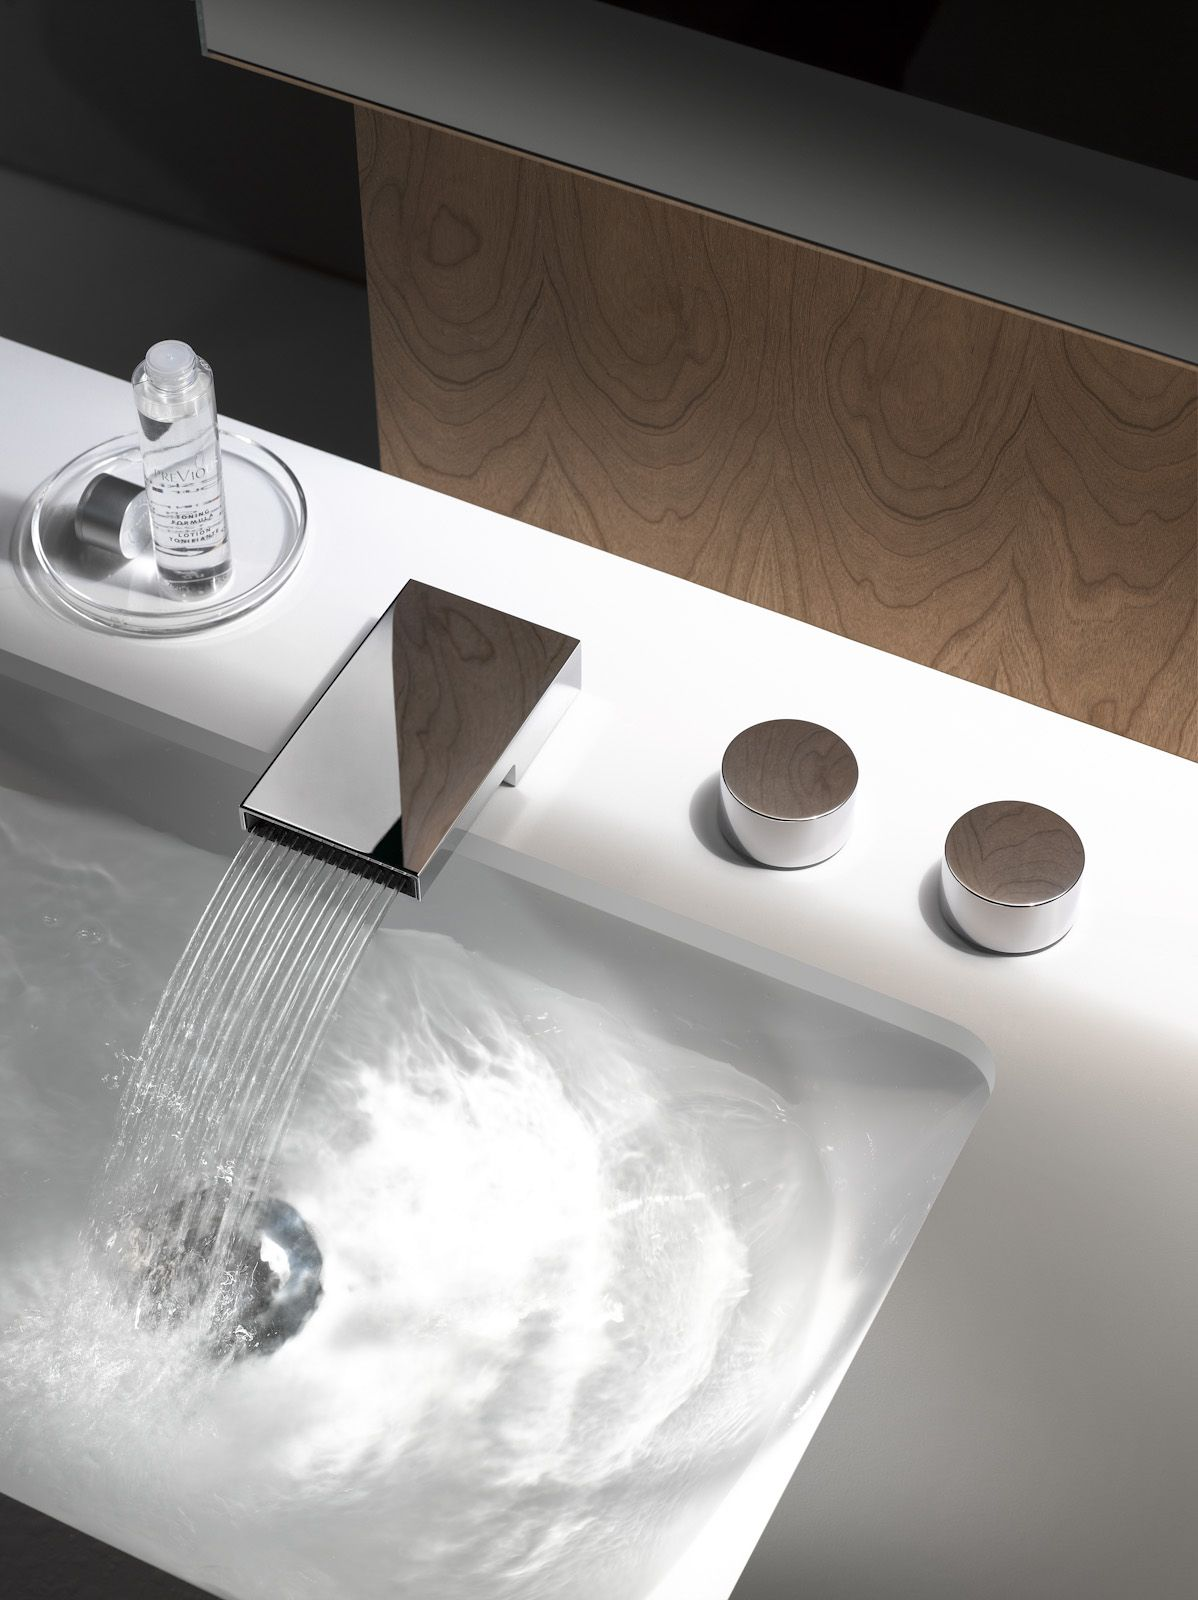 Deque Fitting Washbasin Bathroom Bad Salle De Bain Design Made In Germany Dornbracht